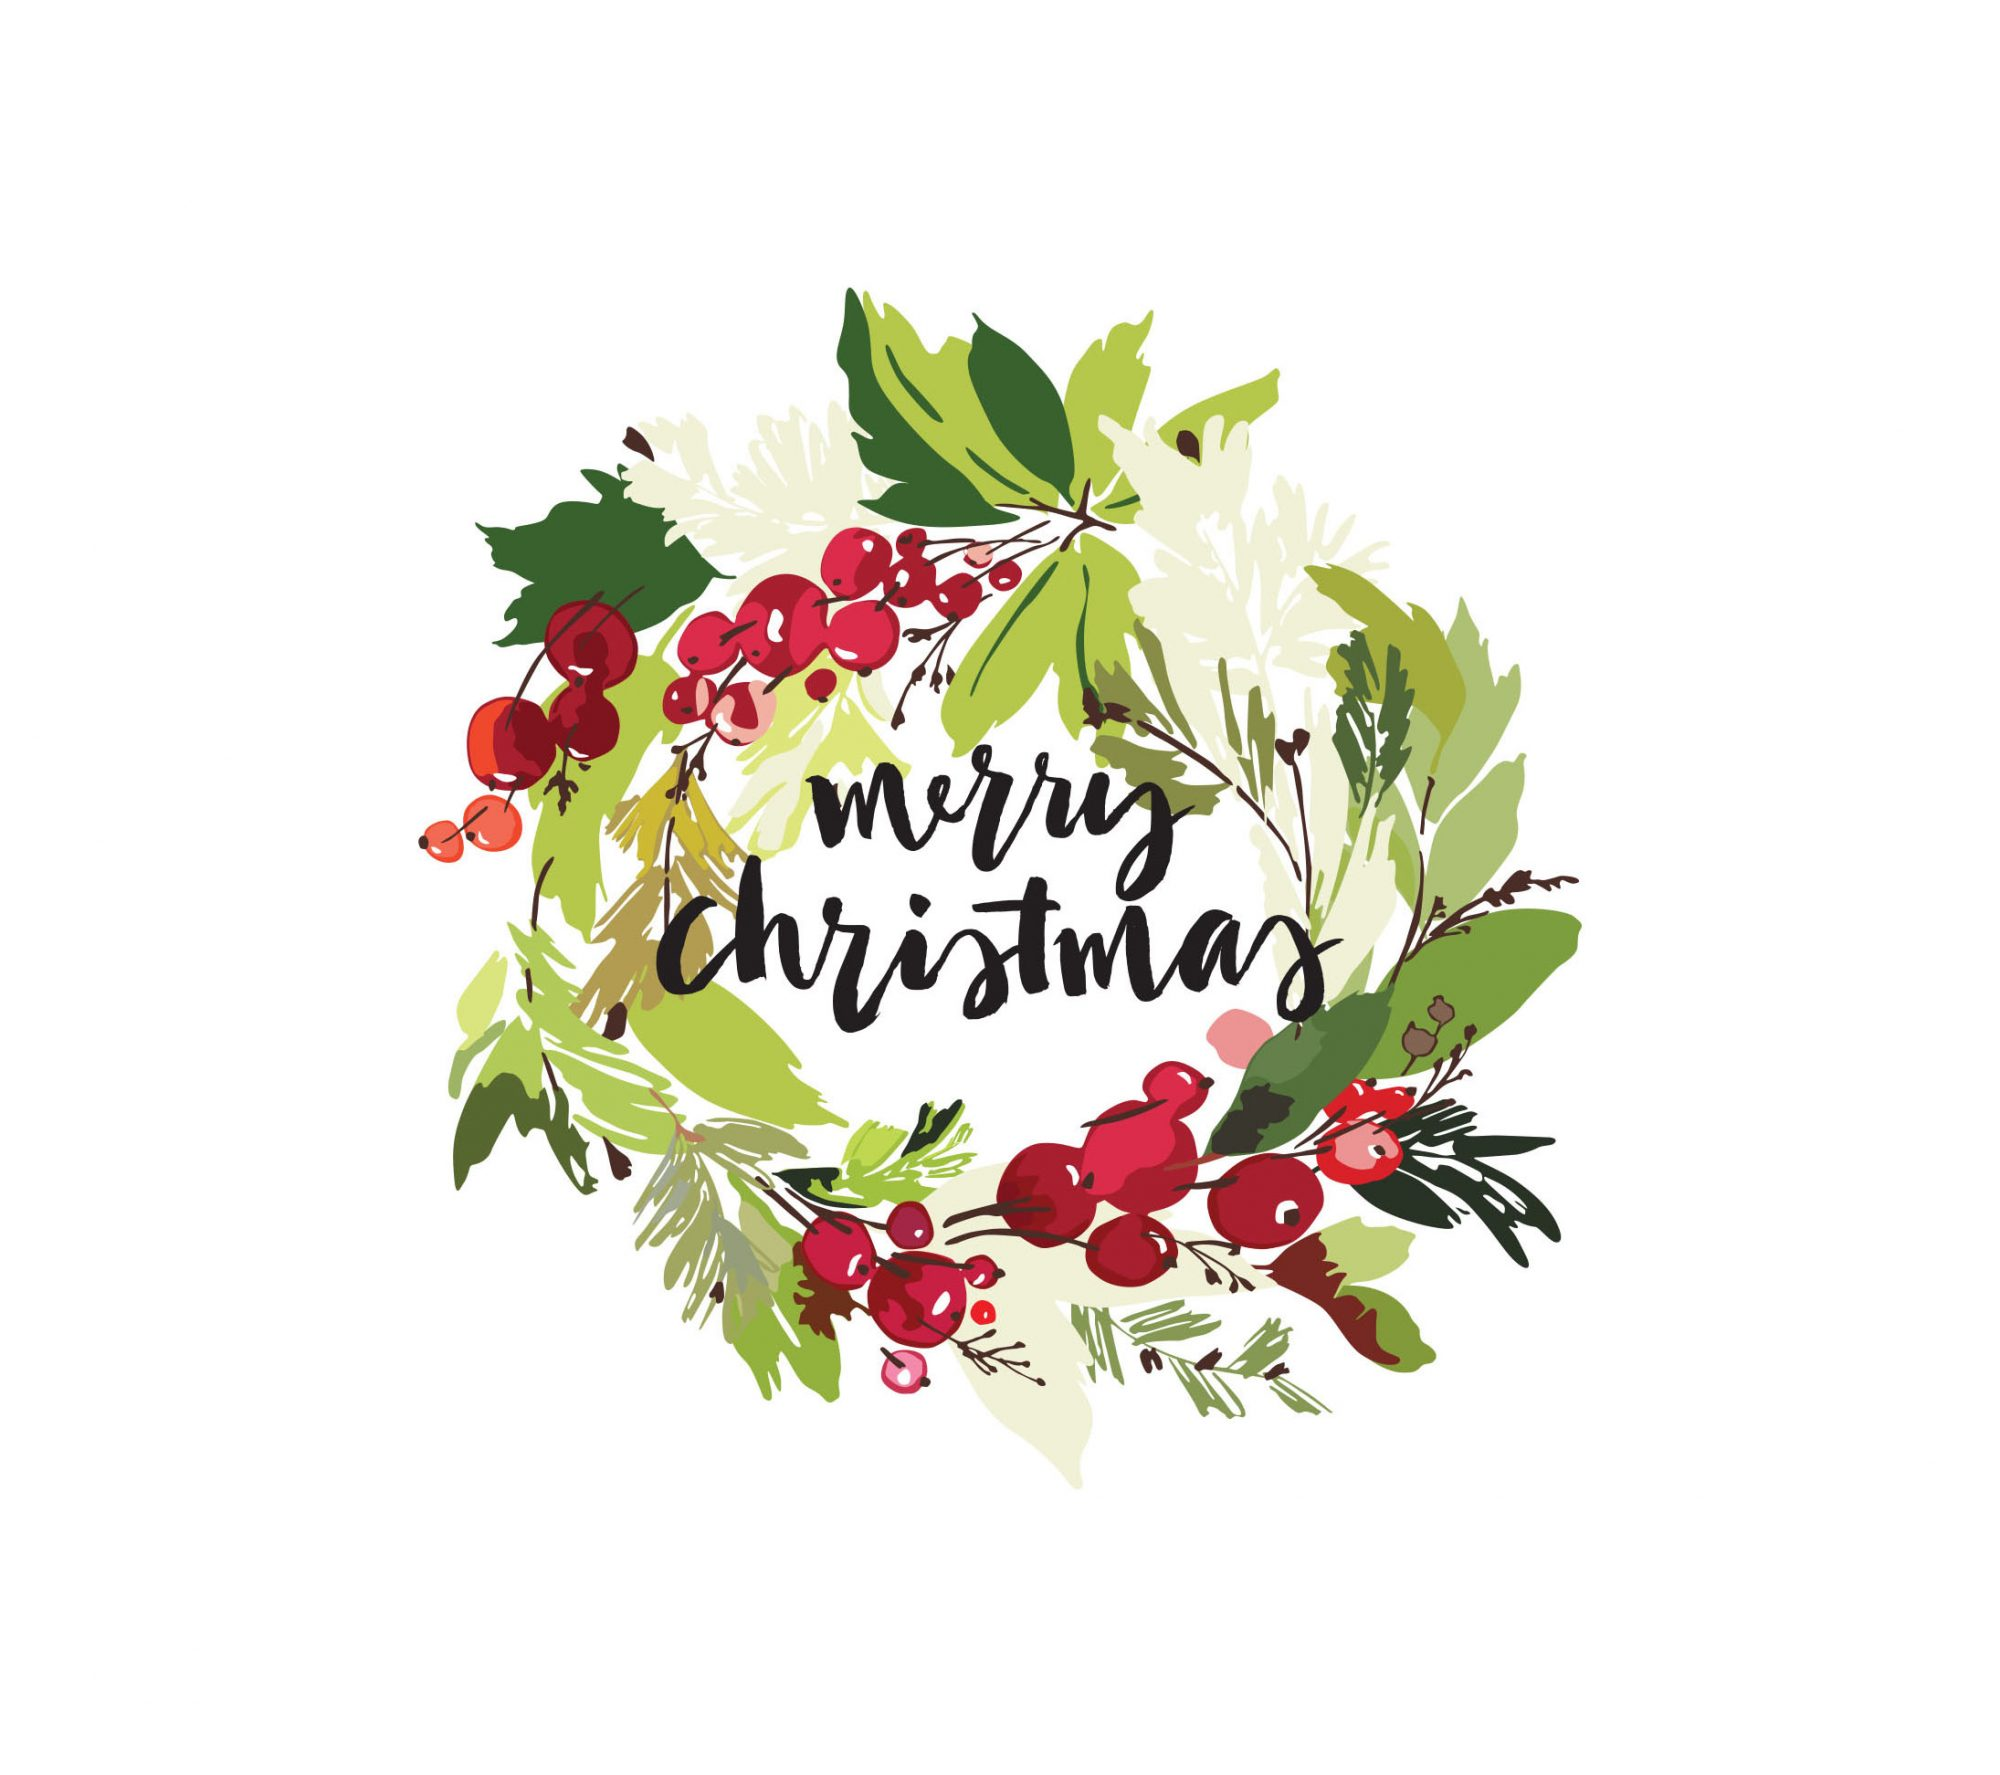 Christmas Cards Images.What To Write In A Christmas Card Southern Living